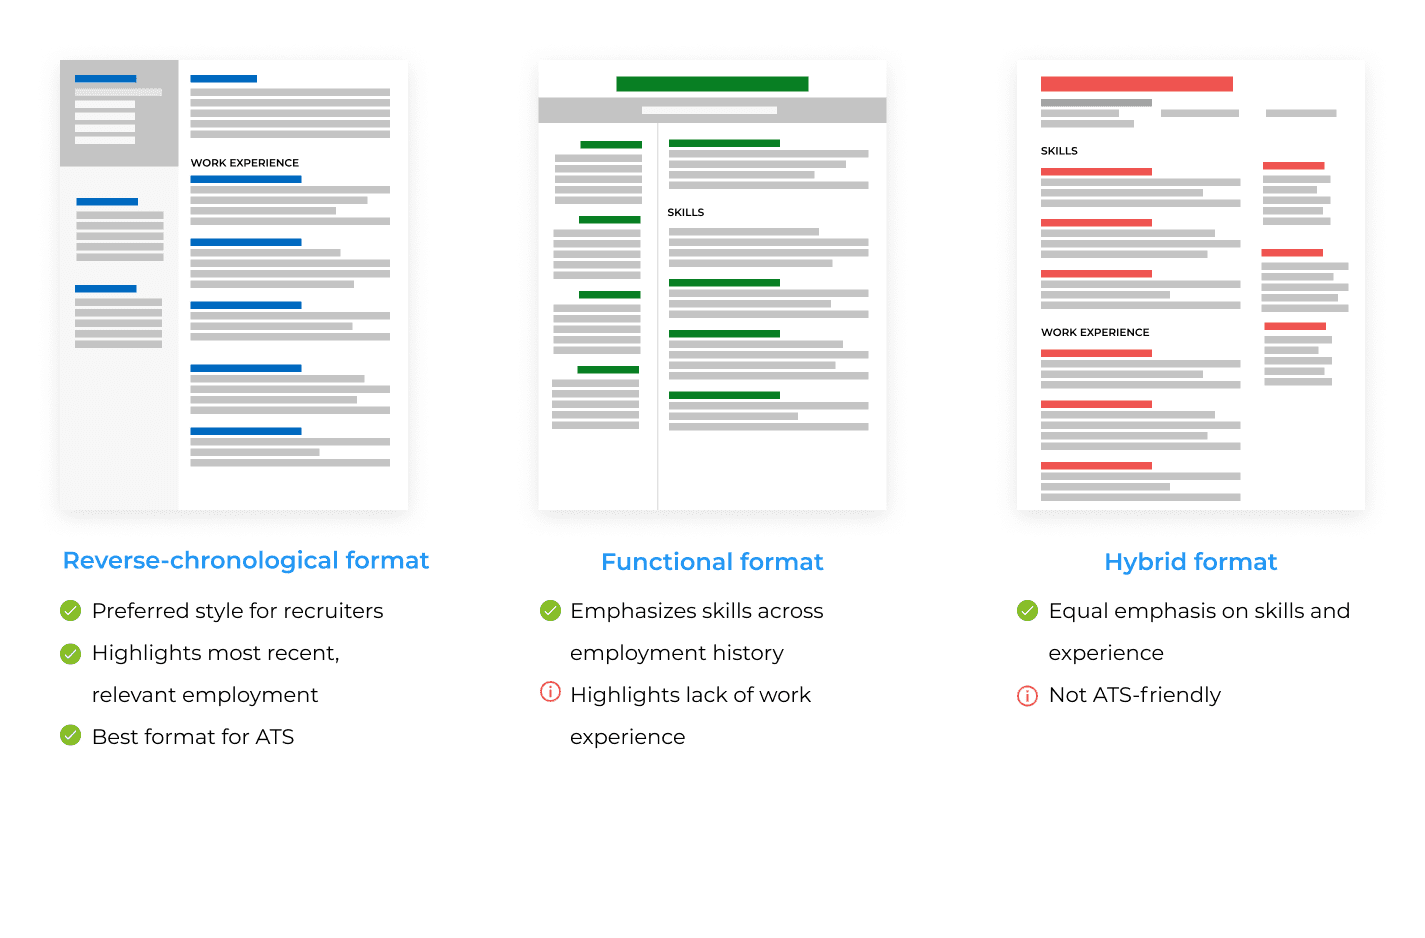 Comparisons of reverse-chronological, functional, and hybrid resume formats